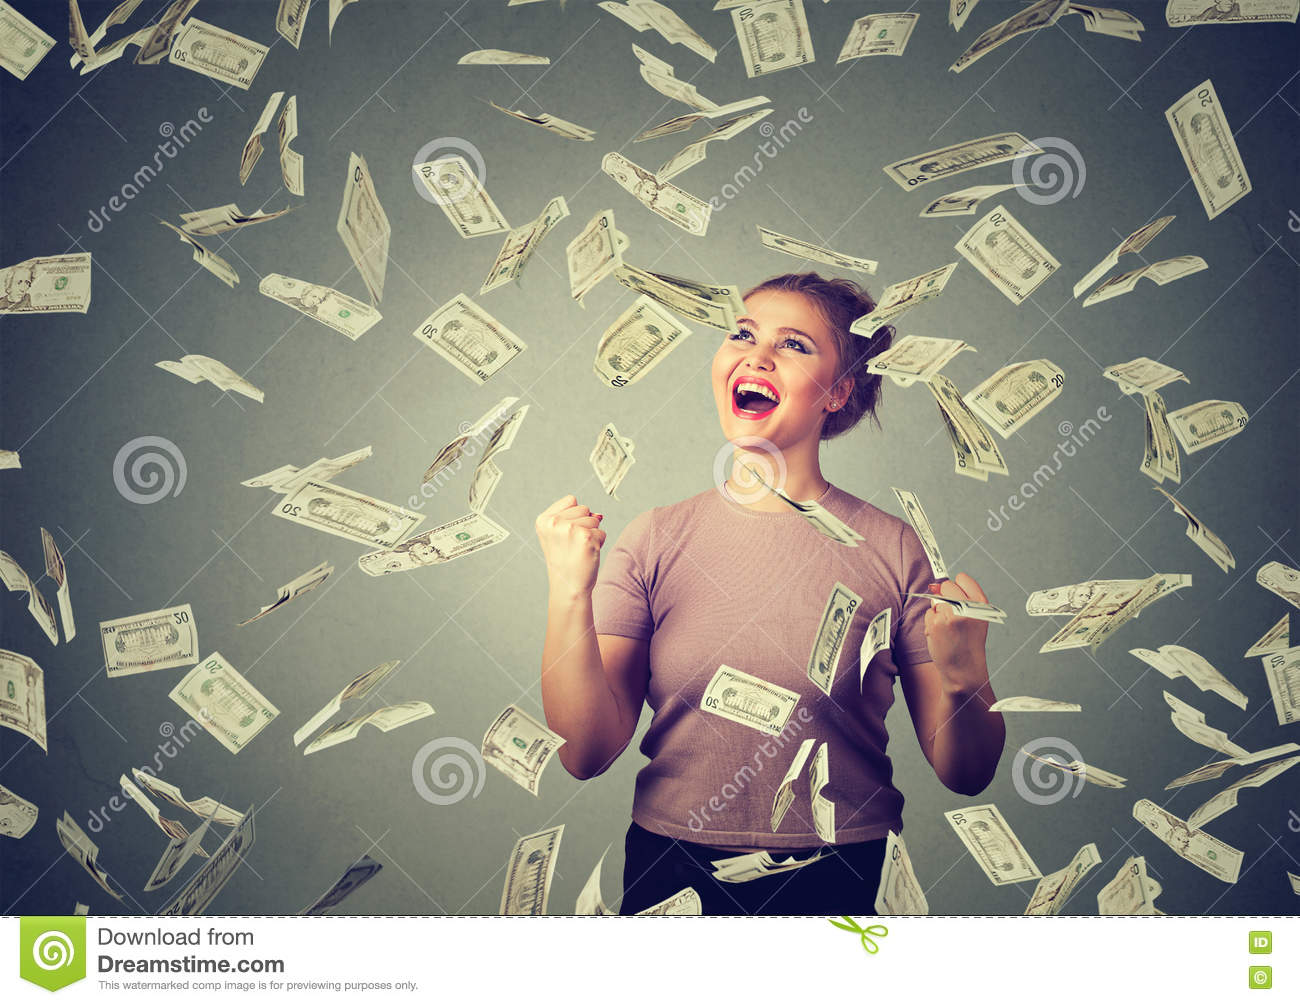 Woman exults pumping fists ecstatic celebrates success under money rain falling down dollar bills banknotes